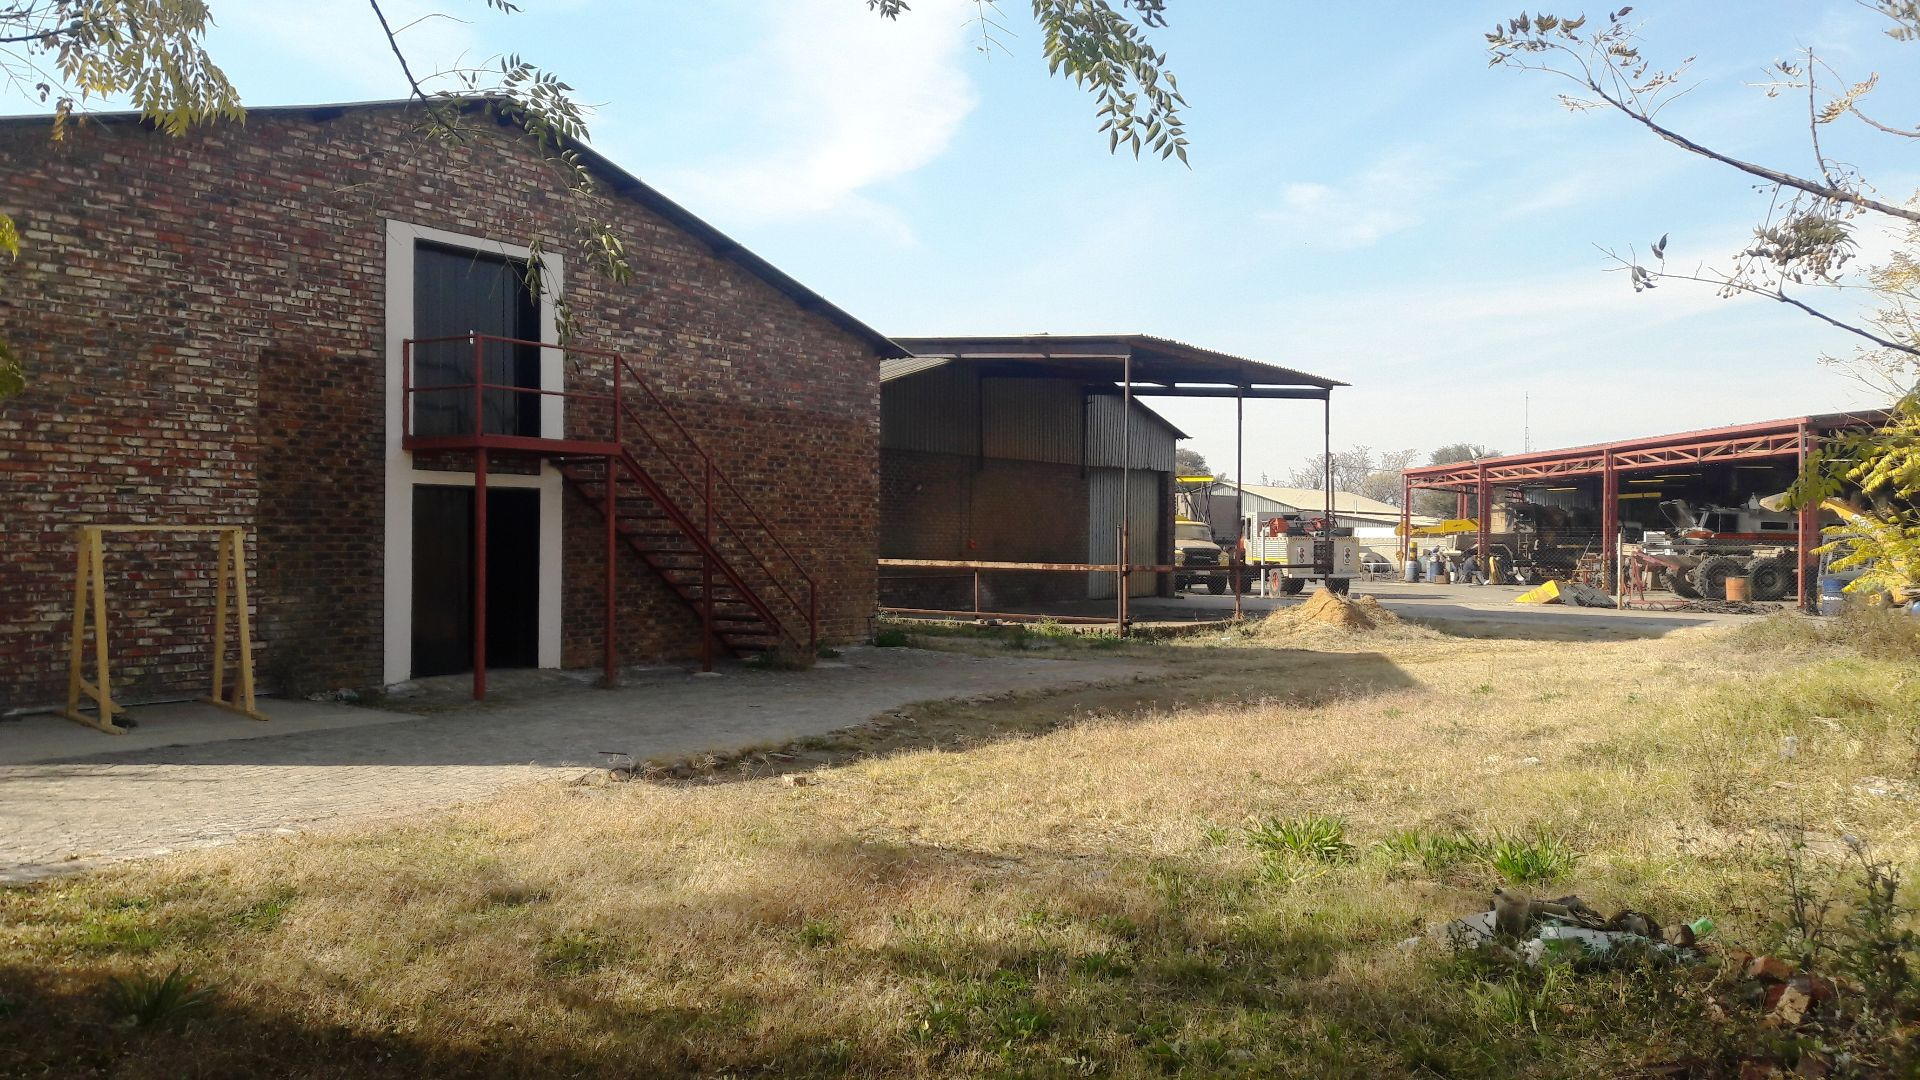 Investment / Residential investment in Potch Industria - 20190619_141328.jpg